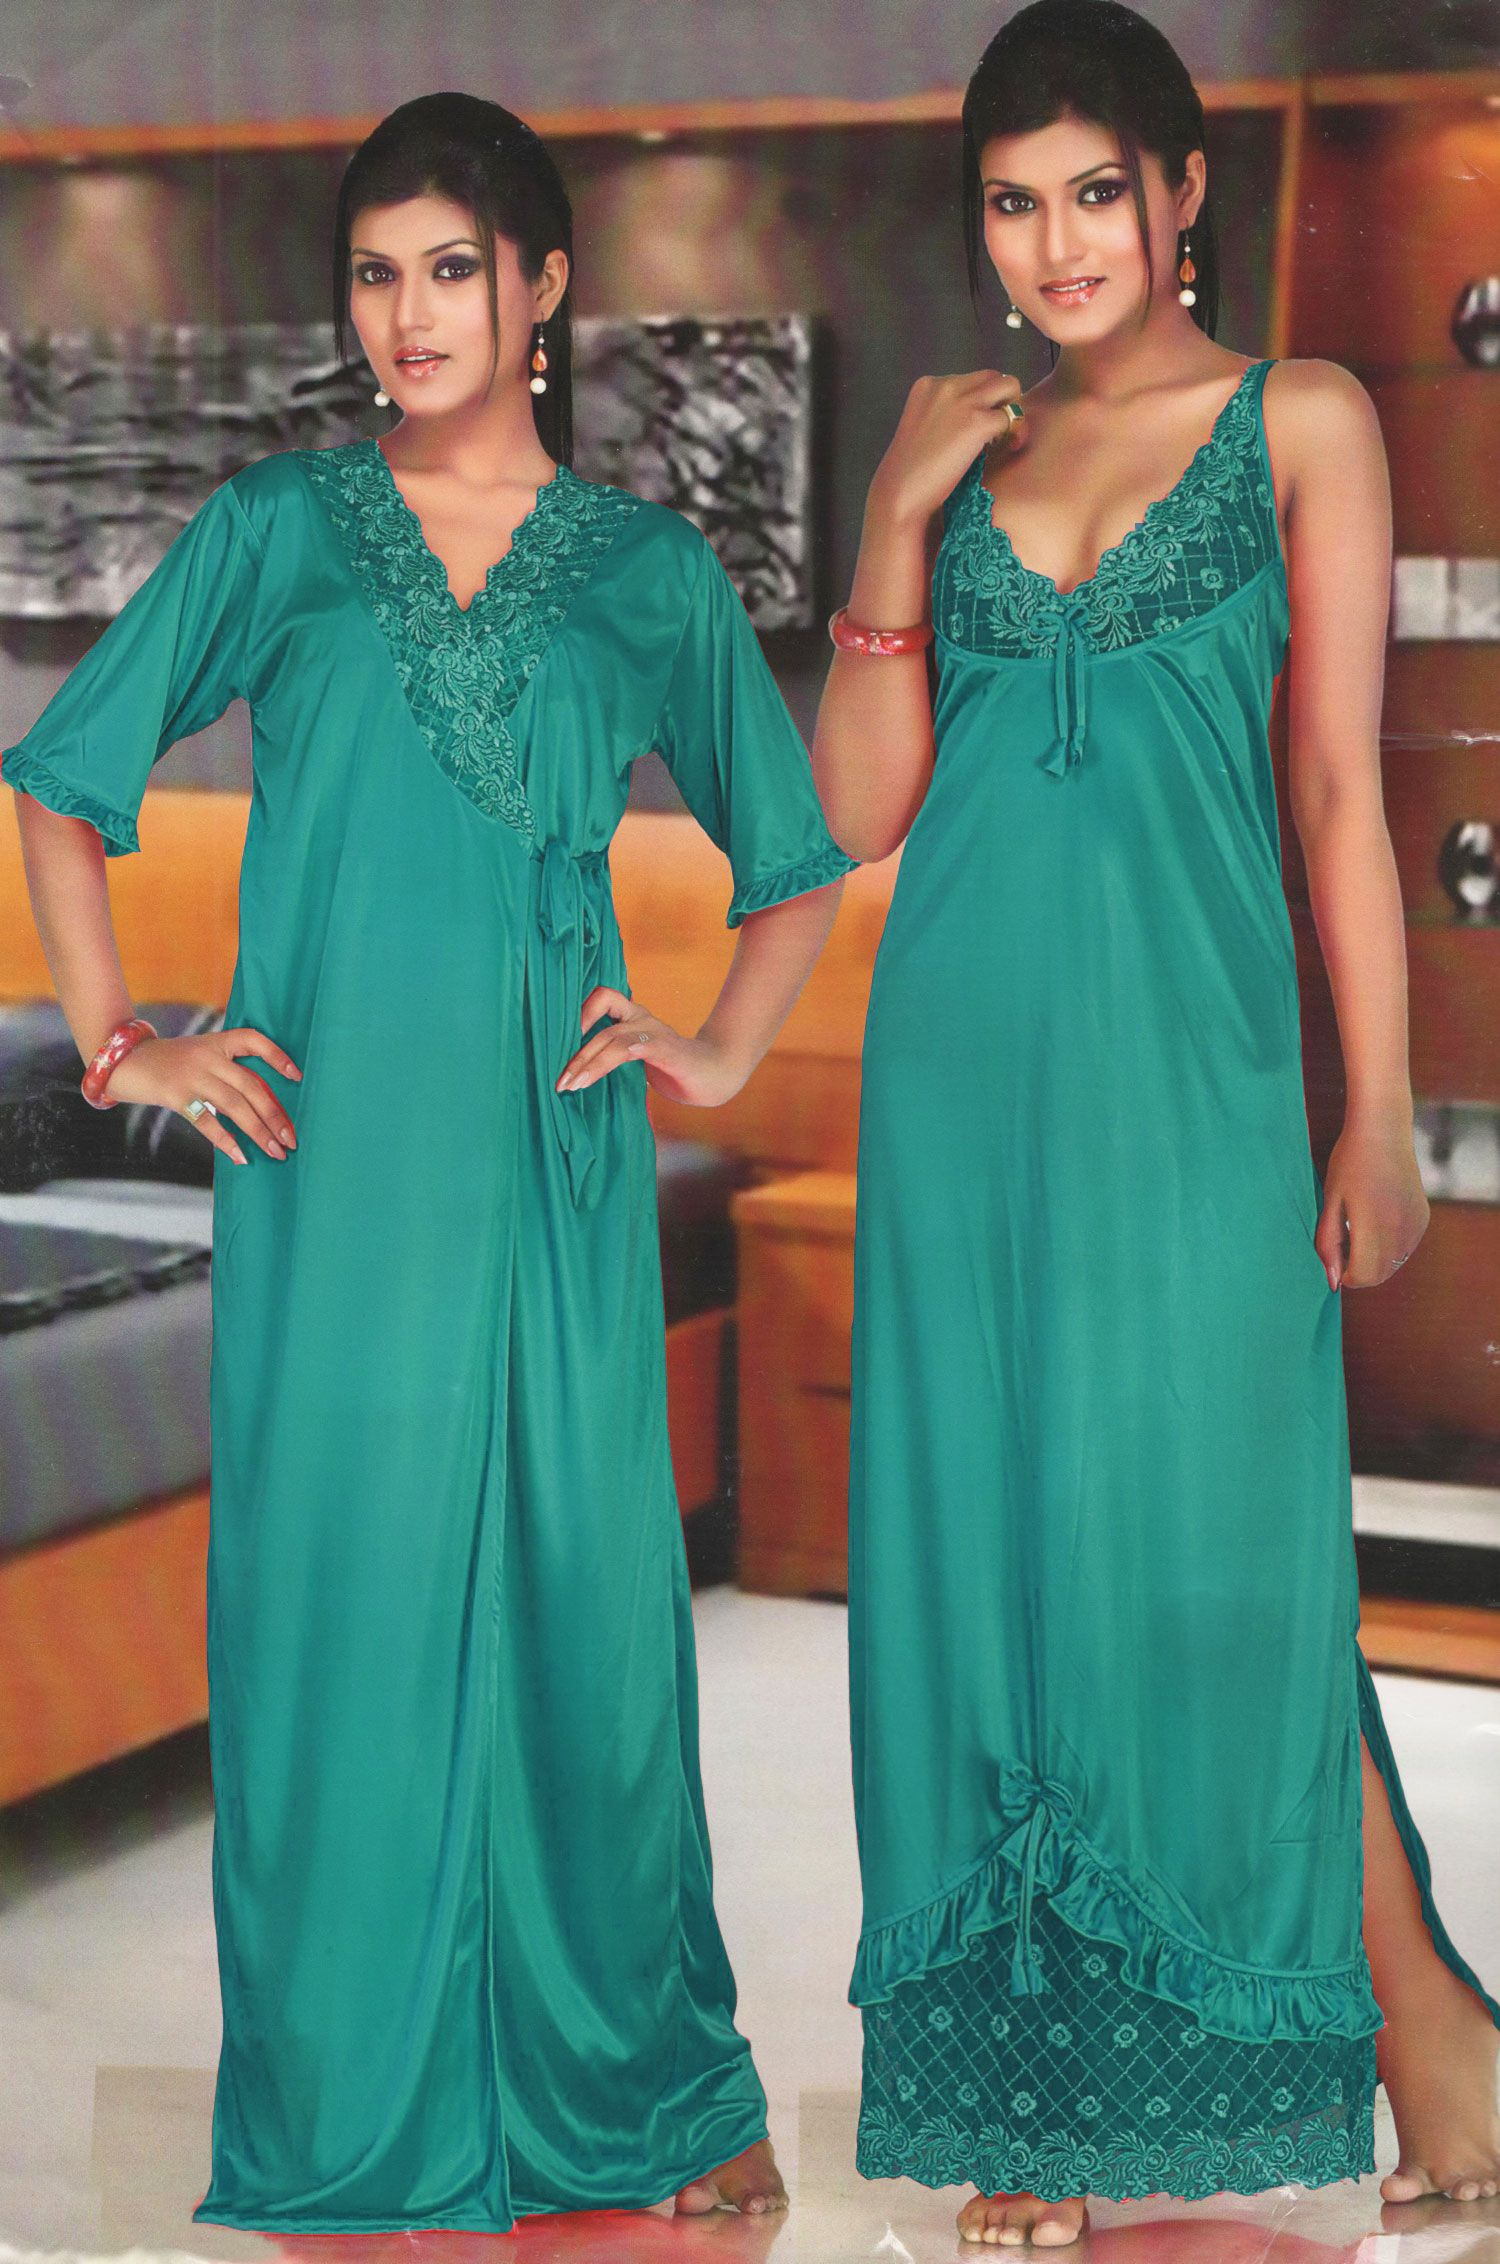 Lace dress nightwear  Ladies designer long satin and lace dressing gown robe womens